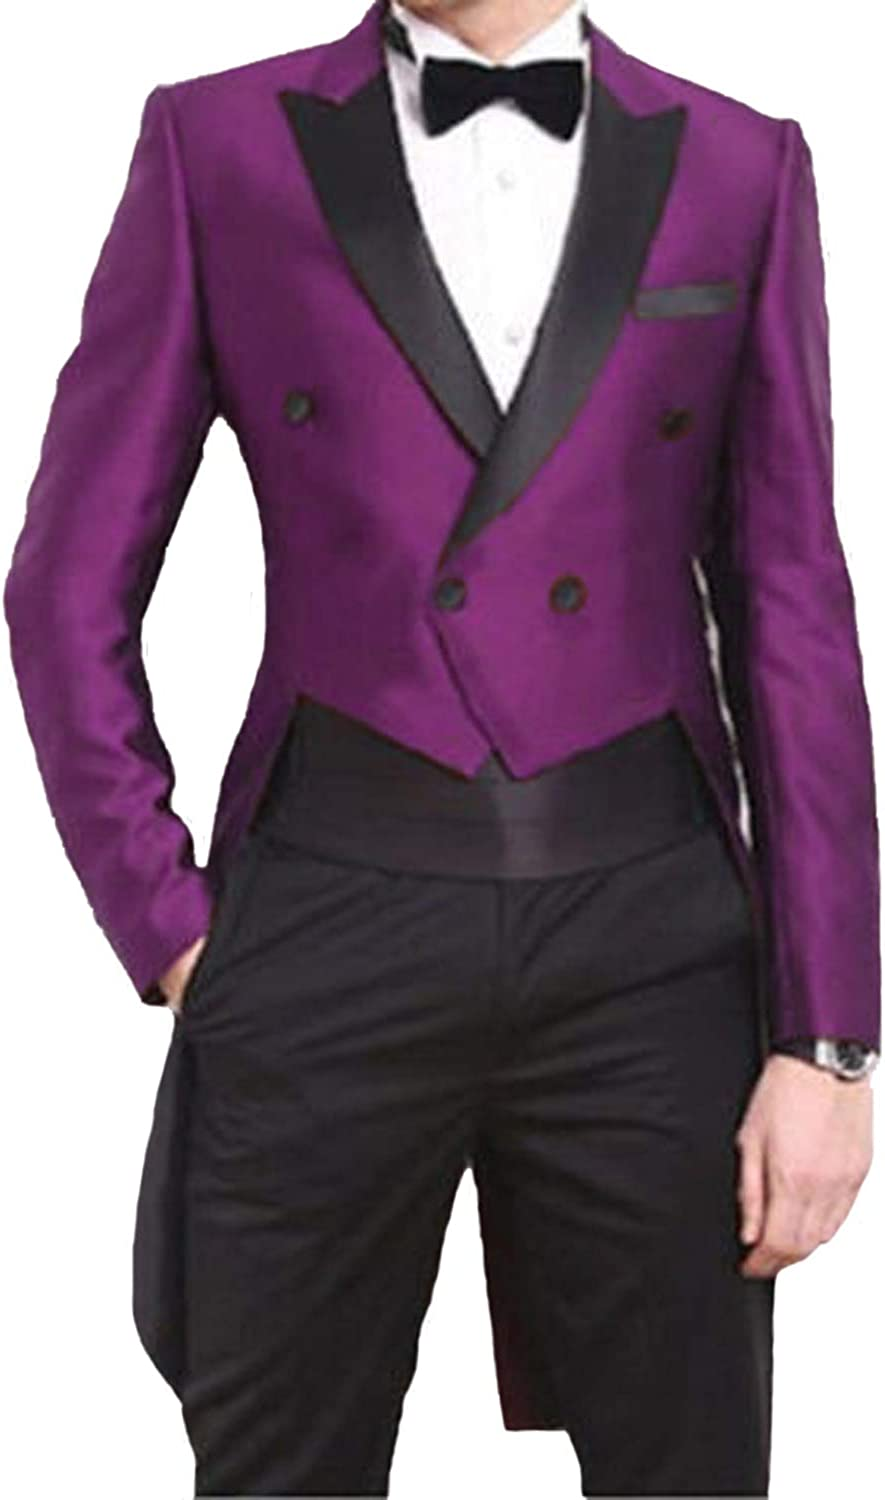 Everbeauty Groom Wedding Suits Mens Tailcoat Slim Fit Wedding Blazer Formal Dinner Jacket Tux with Tails EXZ047